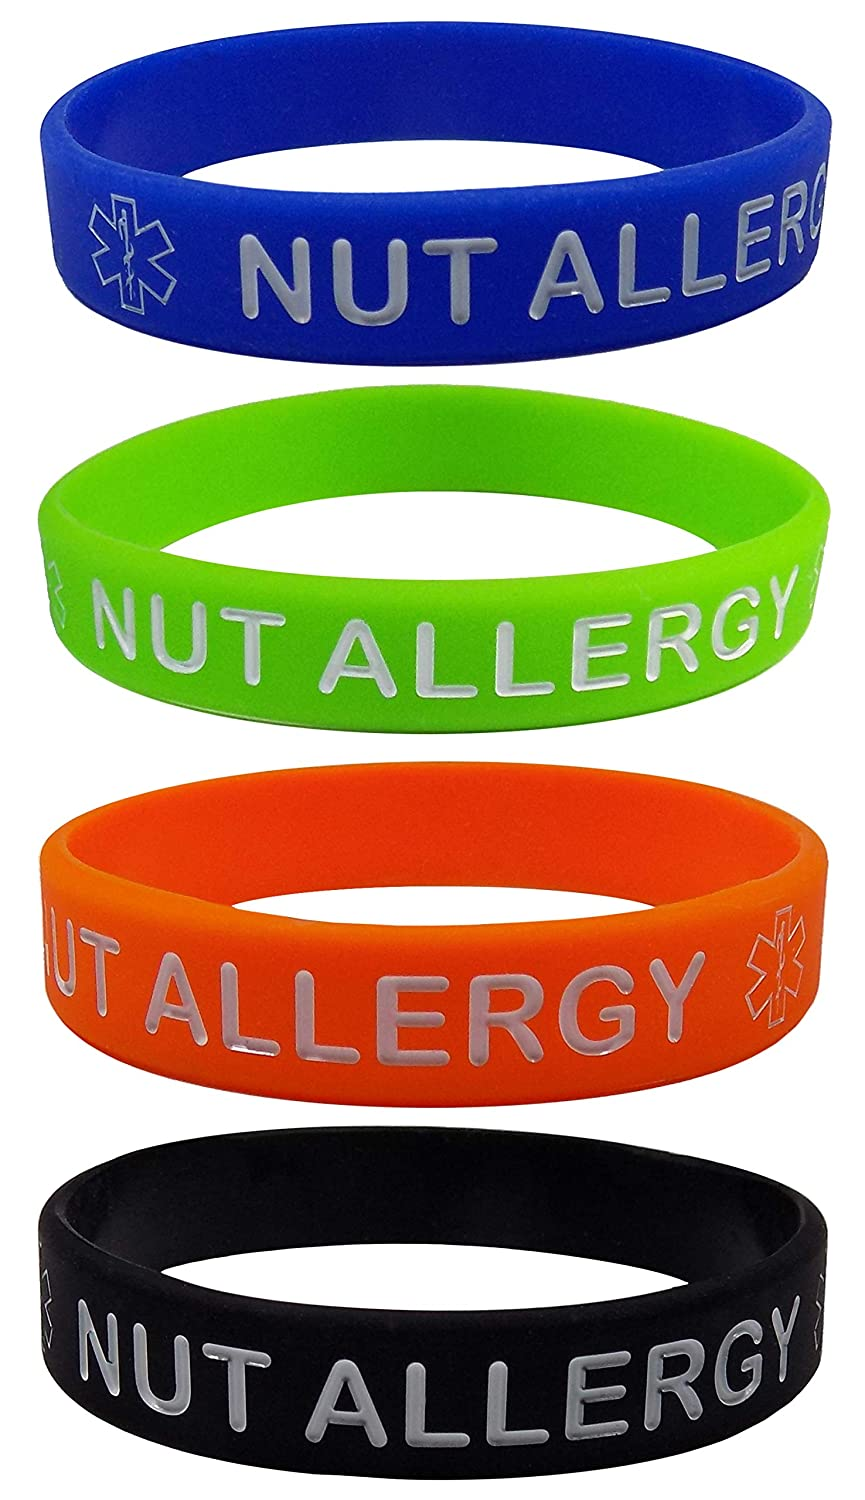 Max Petals NUT Allergy Silicone Wristbands - Blue, Orange, Green and Black Kid's Sizes (4 Pack)